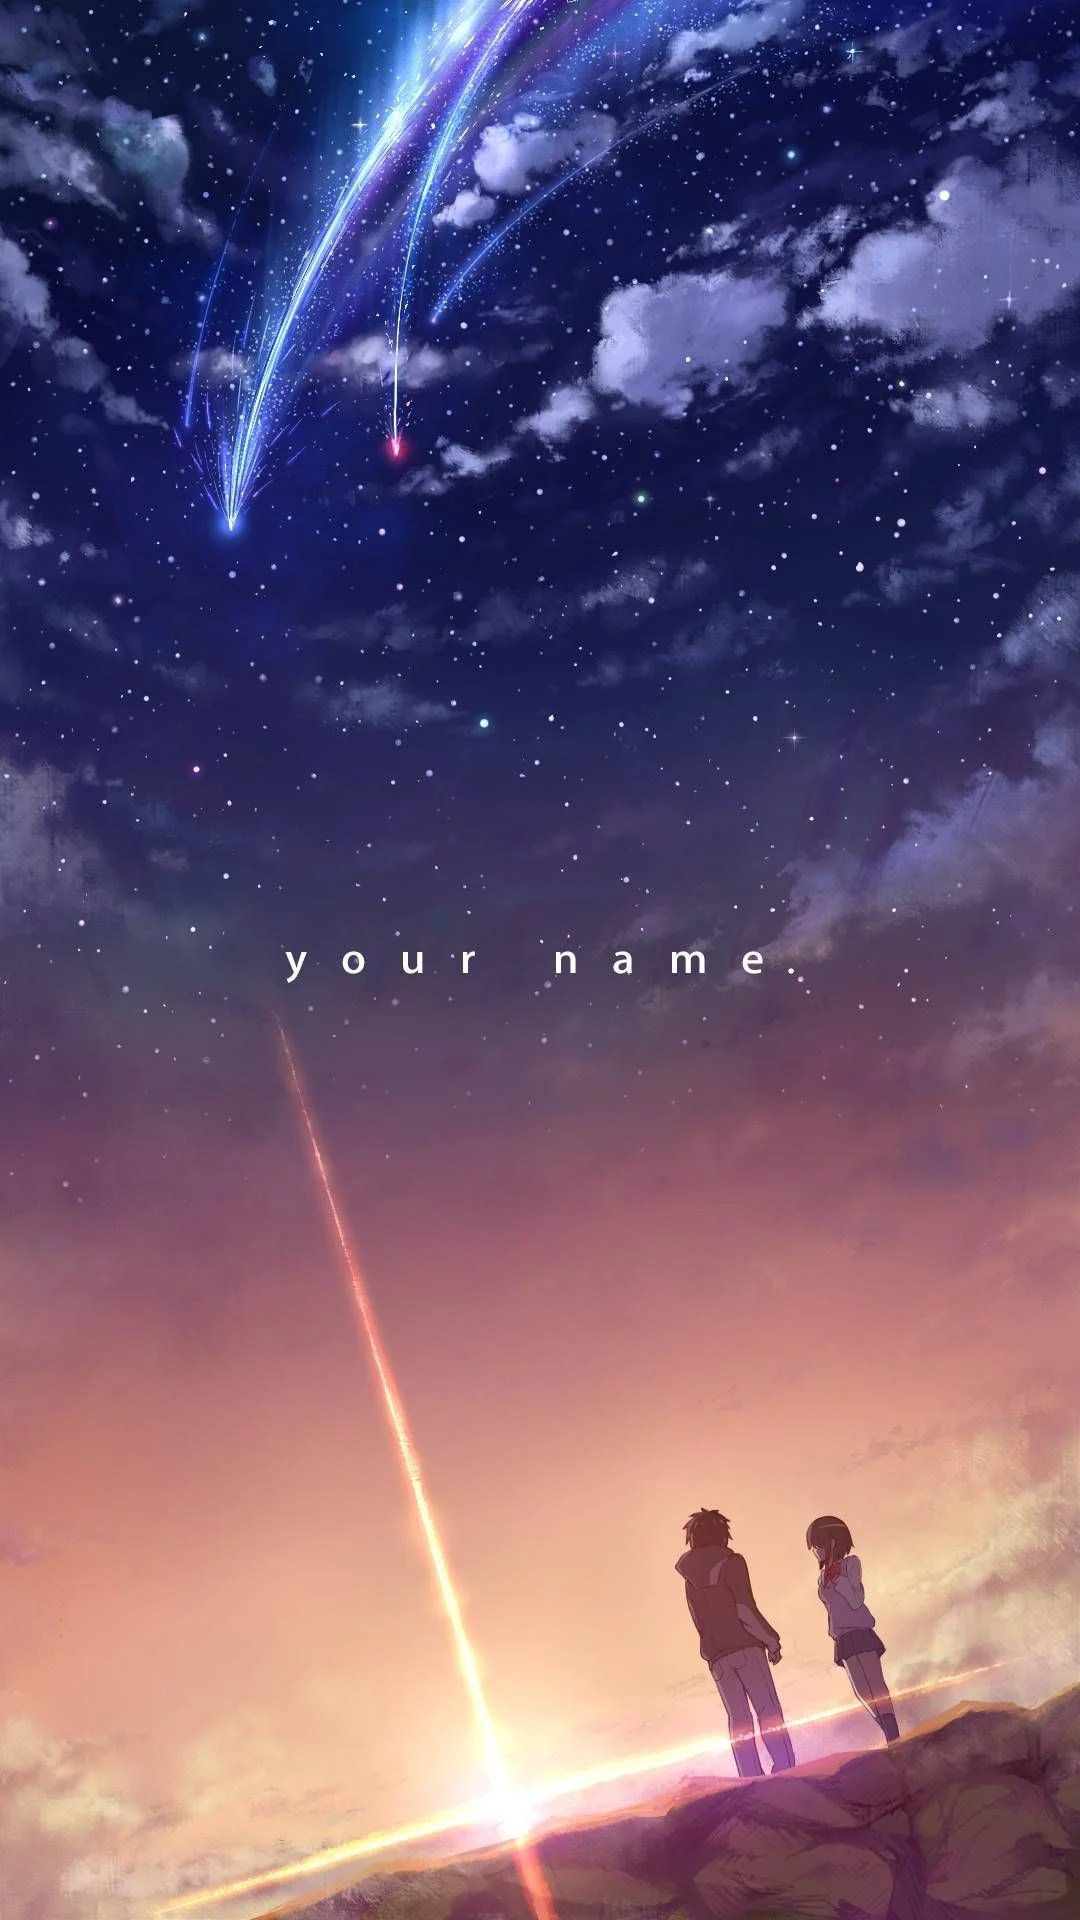 3d my name live wallpaper apk is a very thrilling app for you which you are going to have a lot of fun using, it is a very good app for your android phone. Anime Your Name Live Wallpapers - Top Free Anime Your Name ...